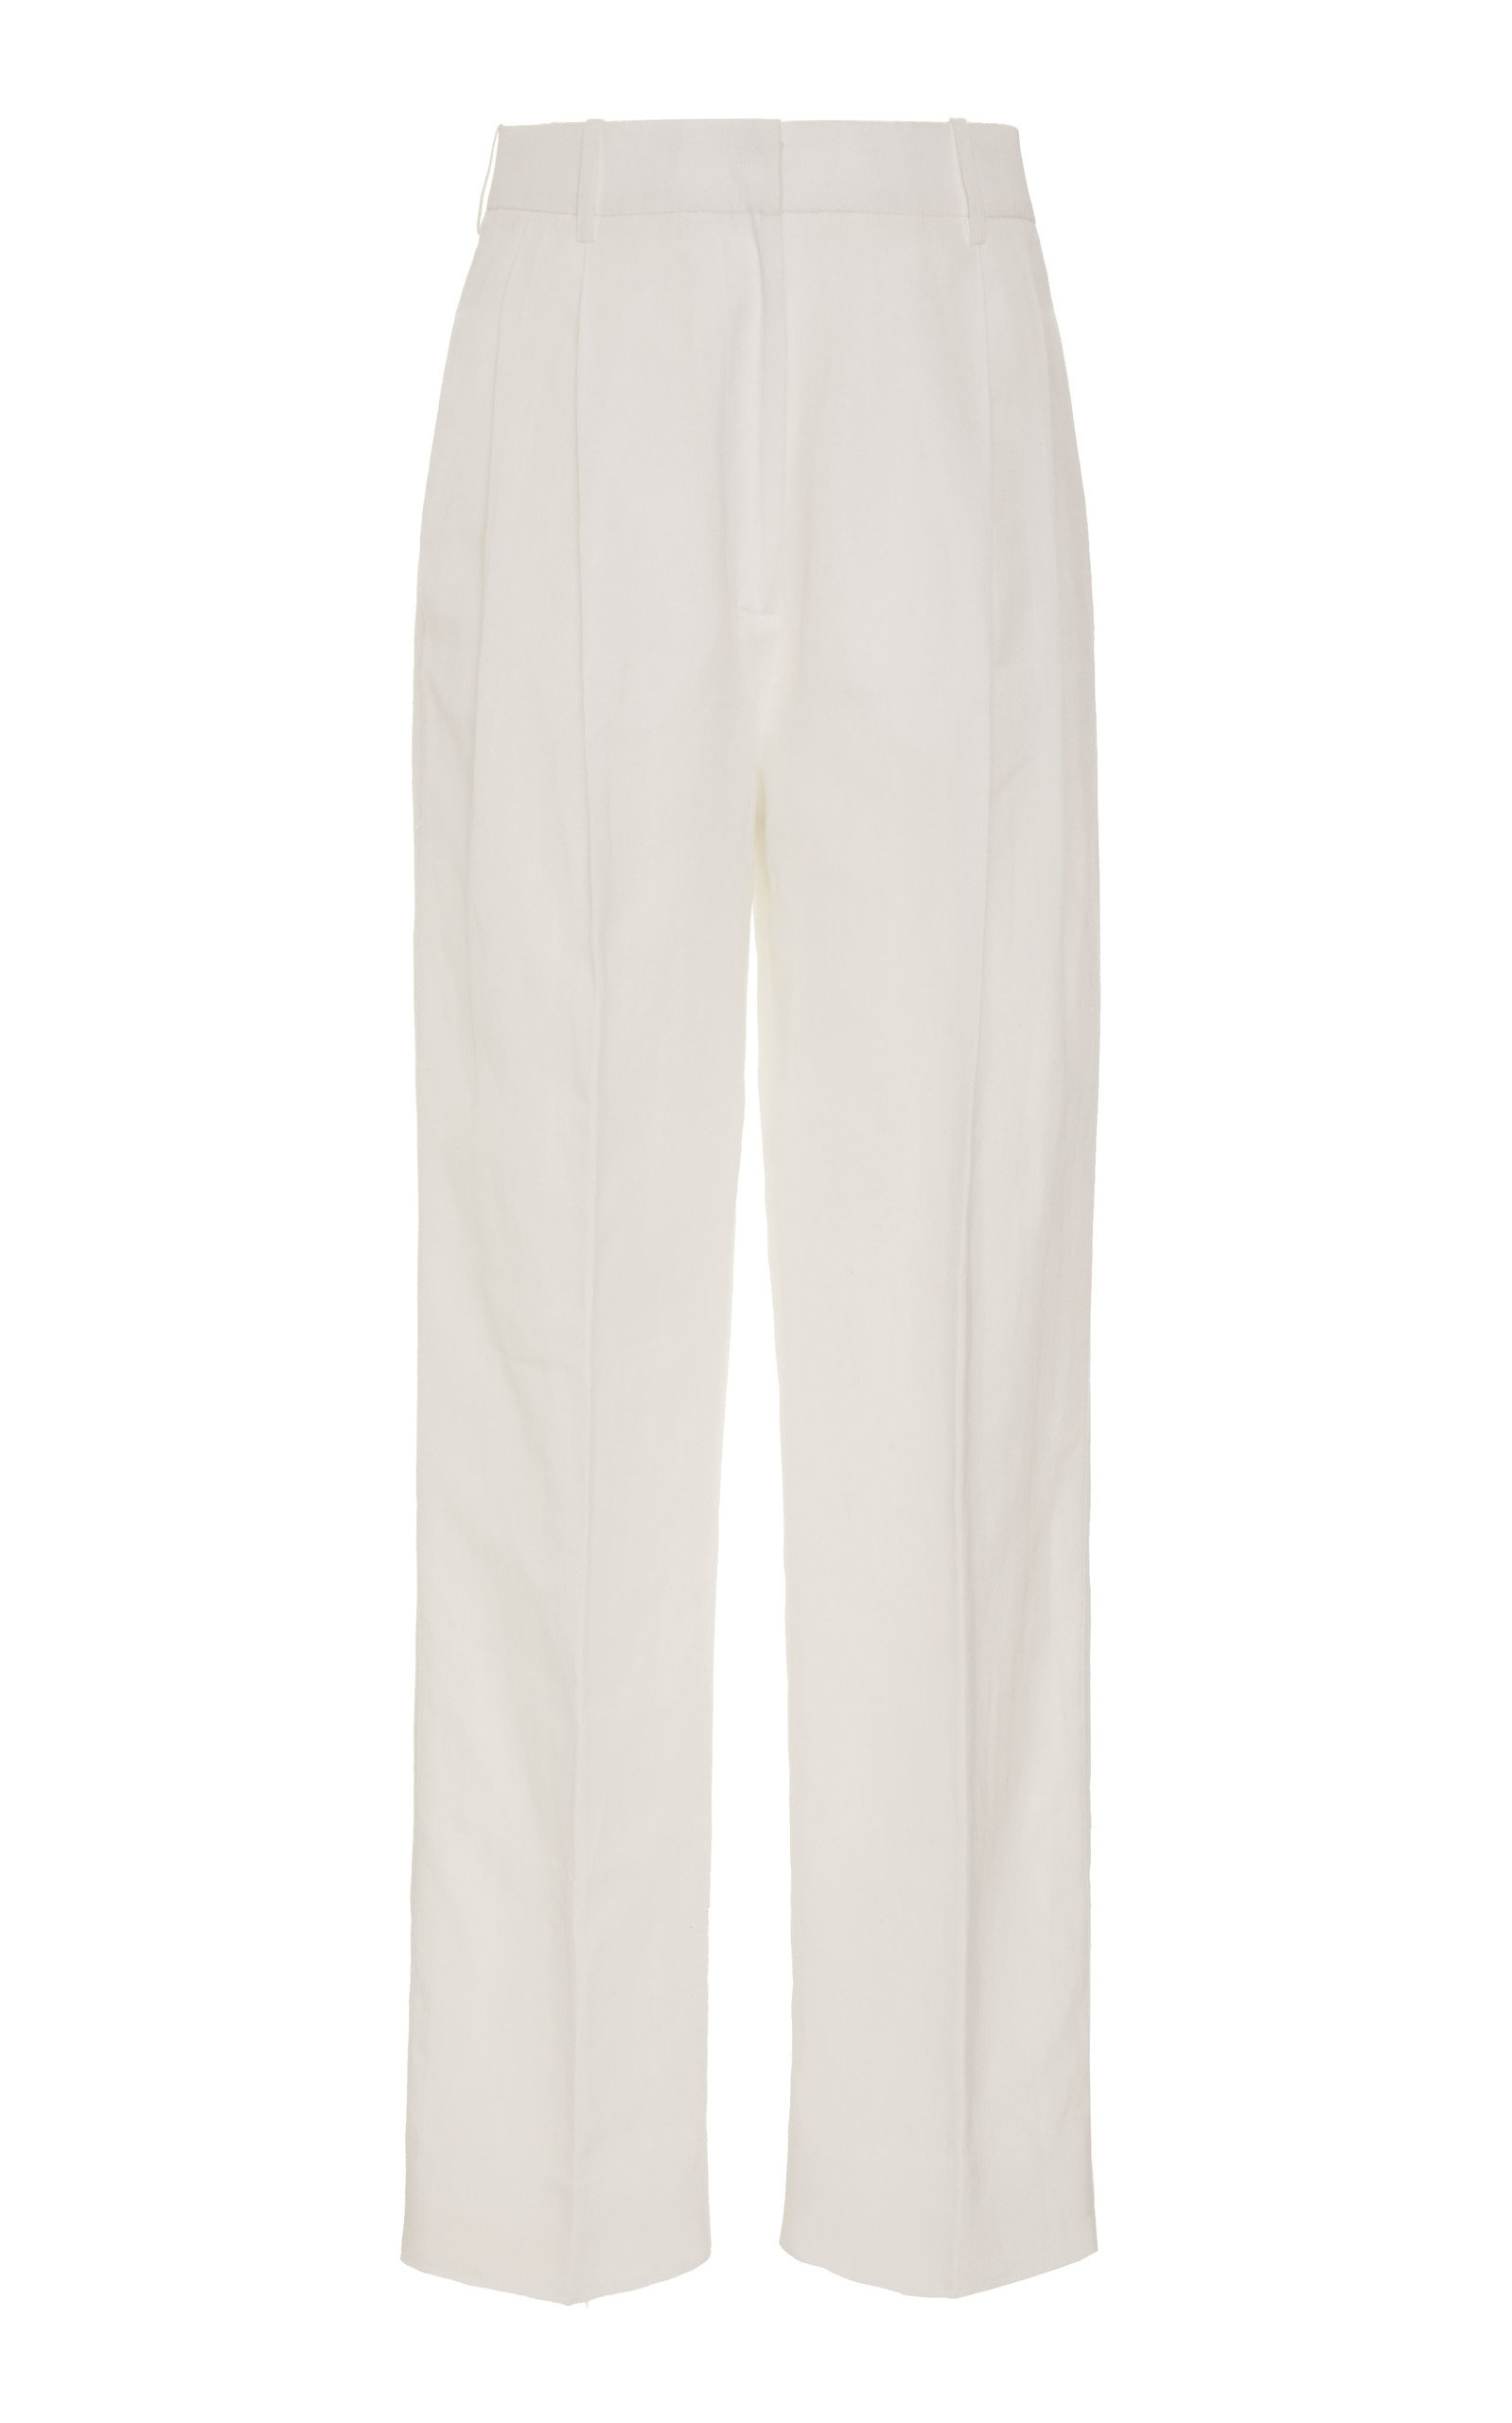 BOUGUESSA TAPERED PANTS